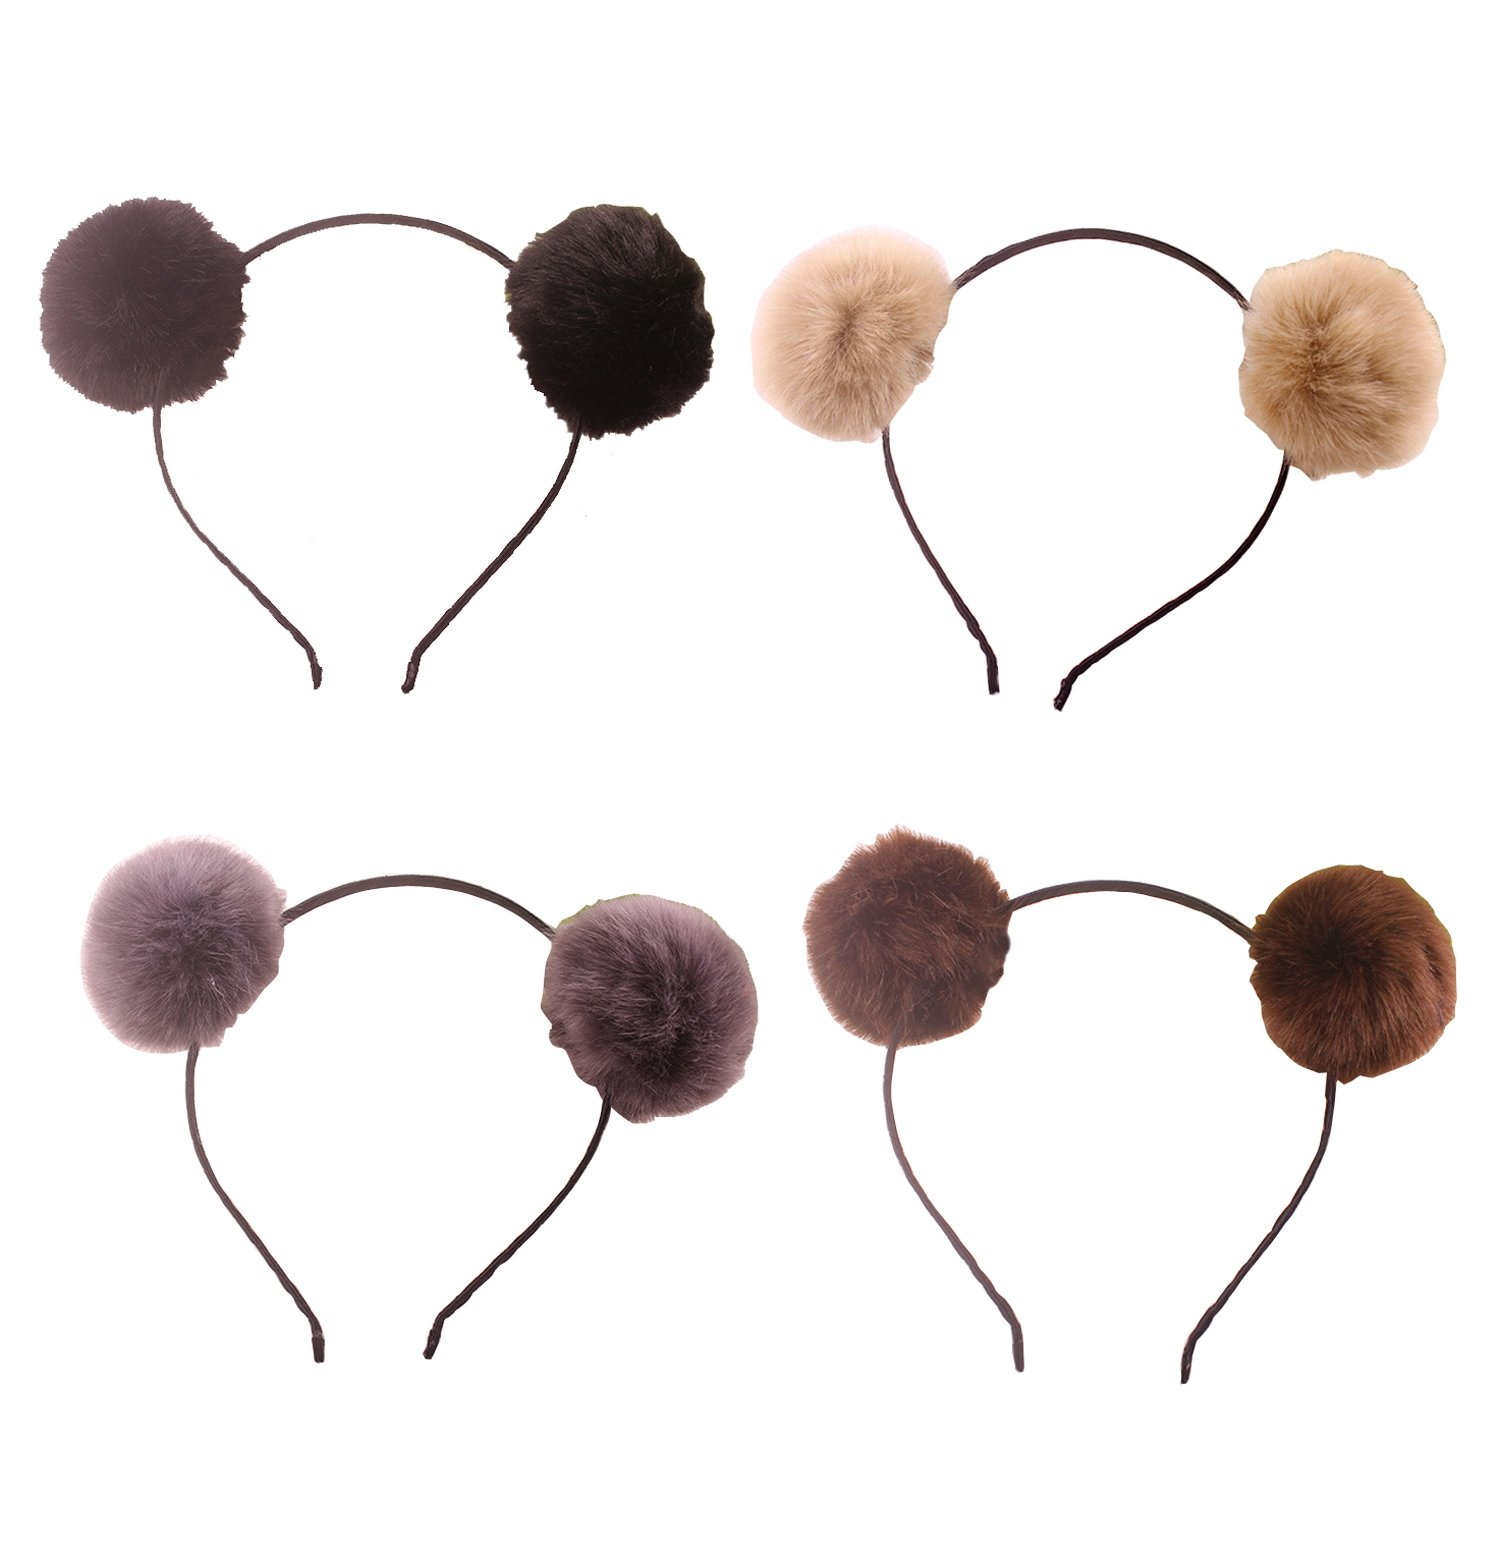 Headband Bear Ears Fluffy Furry Soft Ball Cute Fashion Hoop Hairband Halloween Christmas Party Birthday Headwear Cosplay Costume for Girls Boys Toddlers Kids Adults (B set) by Elaine Room